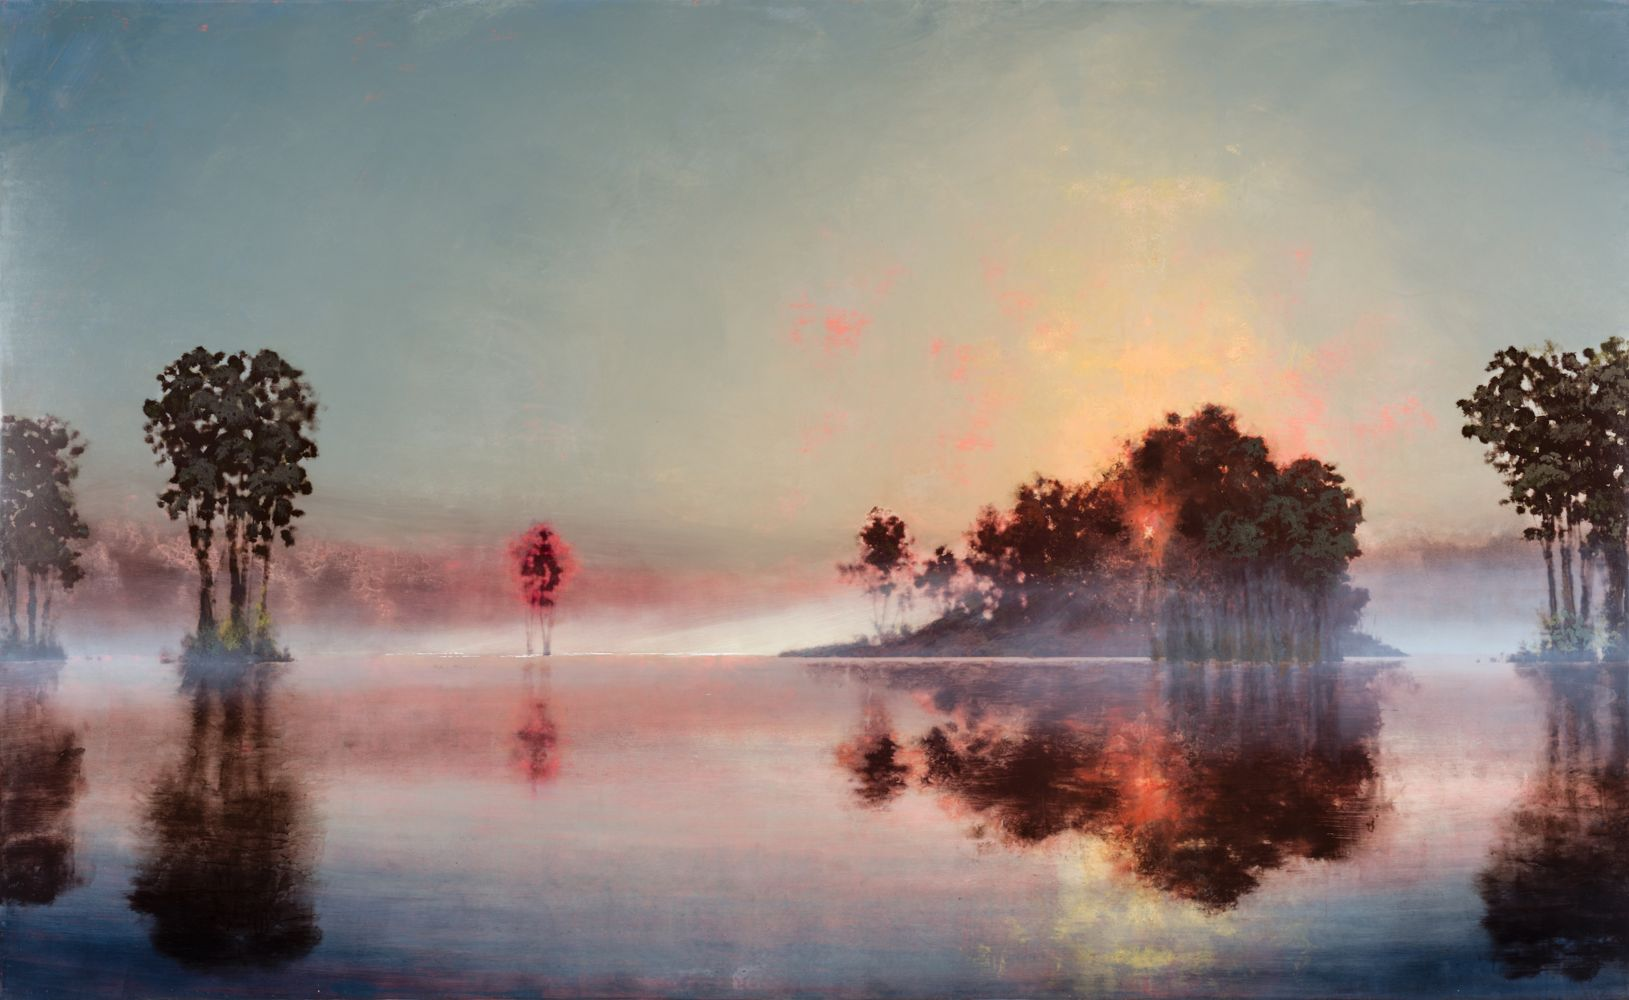 Landscape painting depicting the sun's reflection onto foggy water with pink hues by Stephen Hannock.